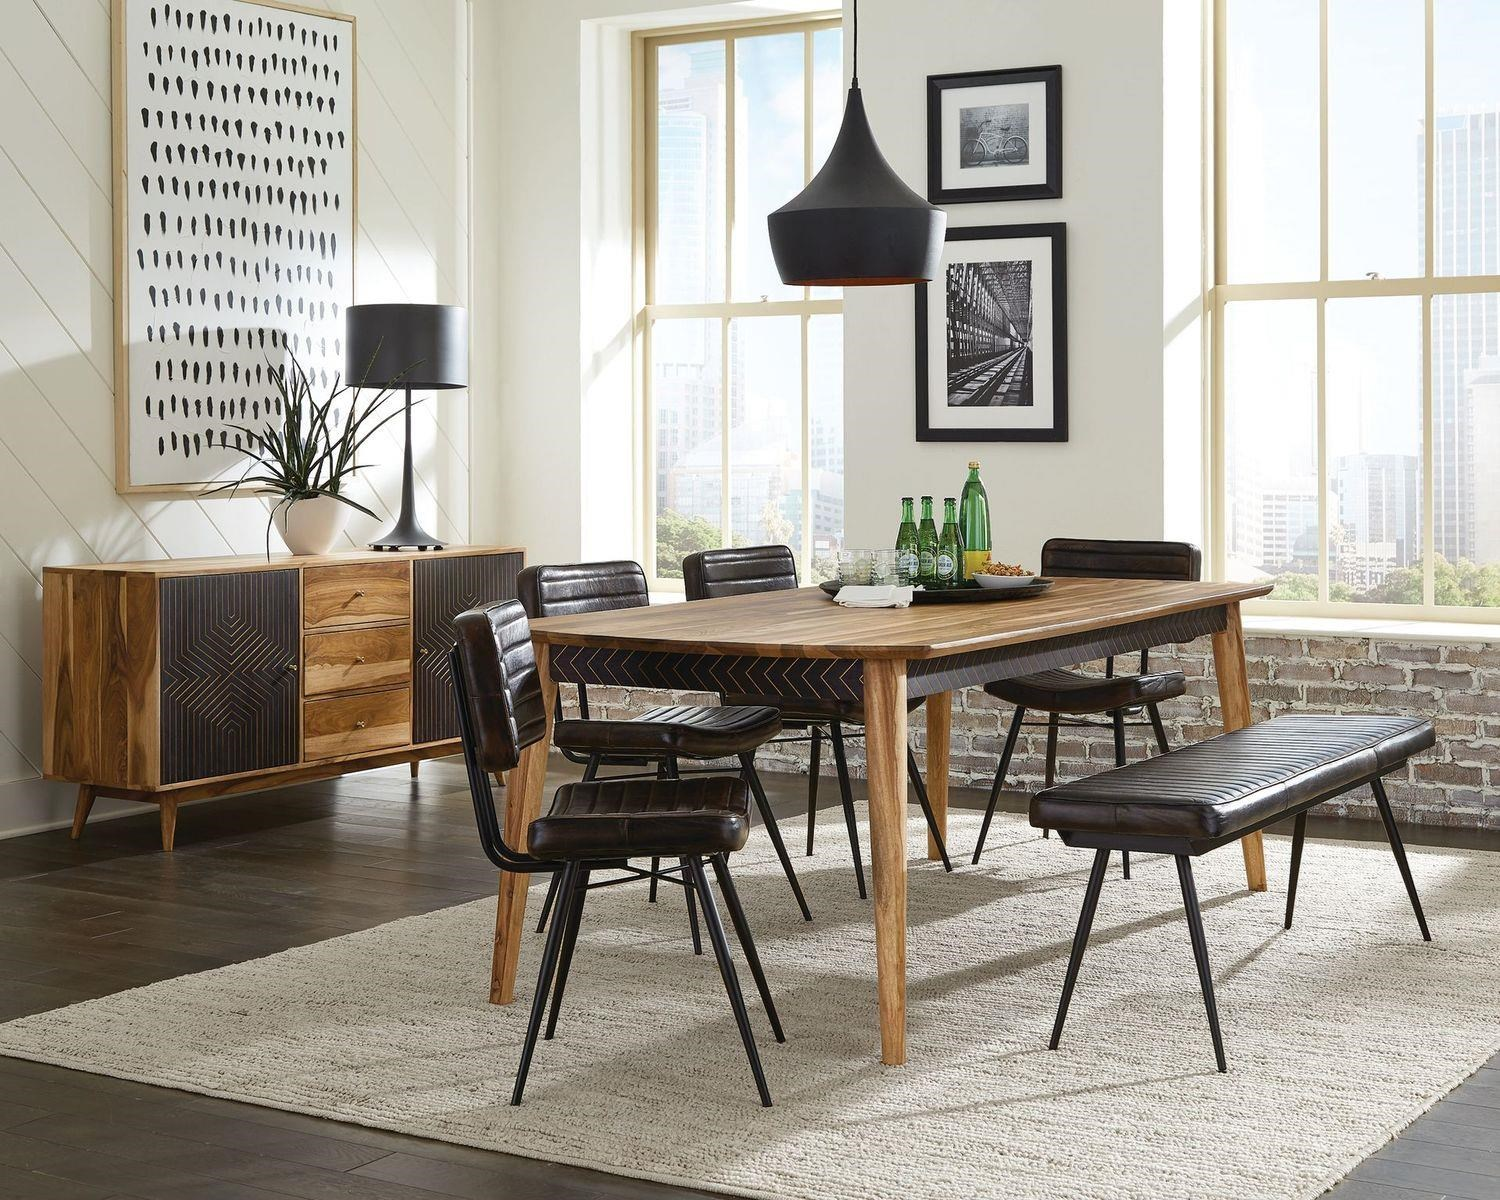 Partridge 6-PIECE DINING AND CHAIR SET W/ BENCH by Coaster at Beck's Furniture